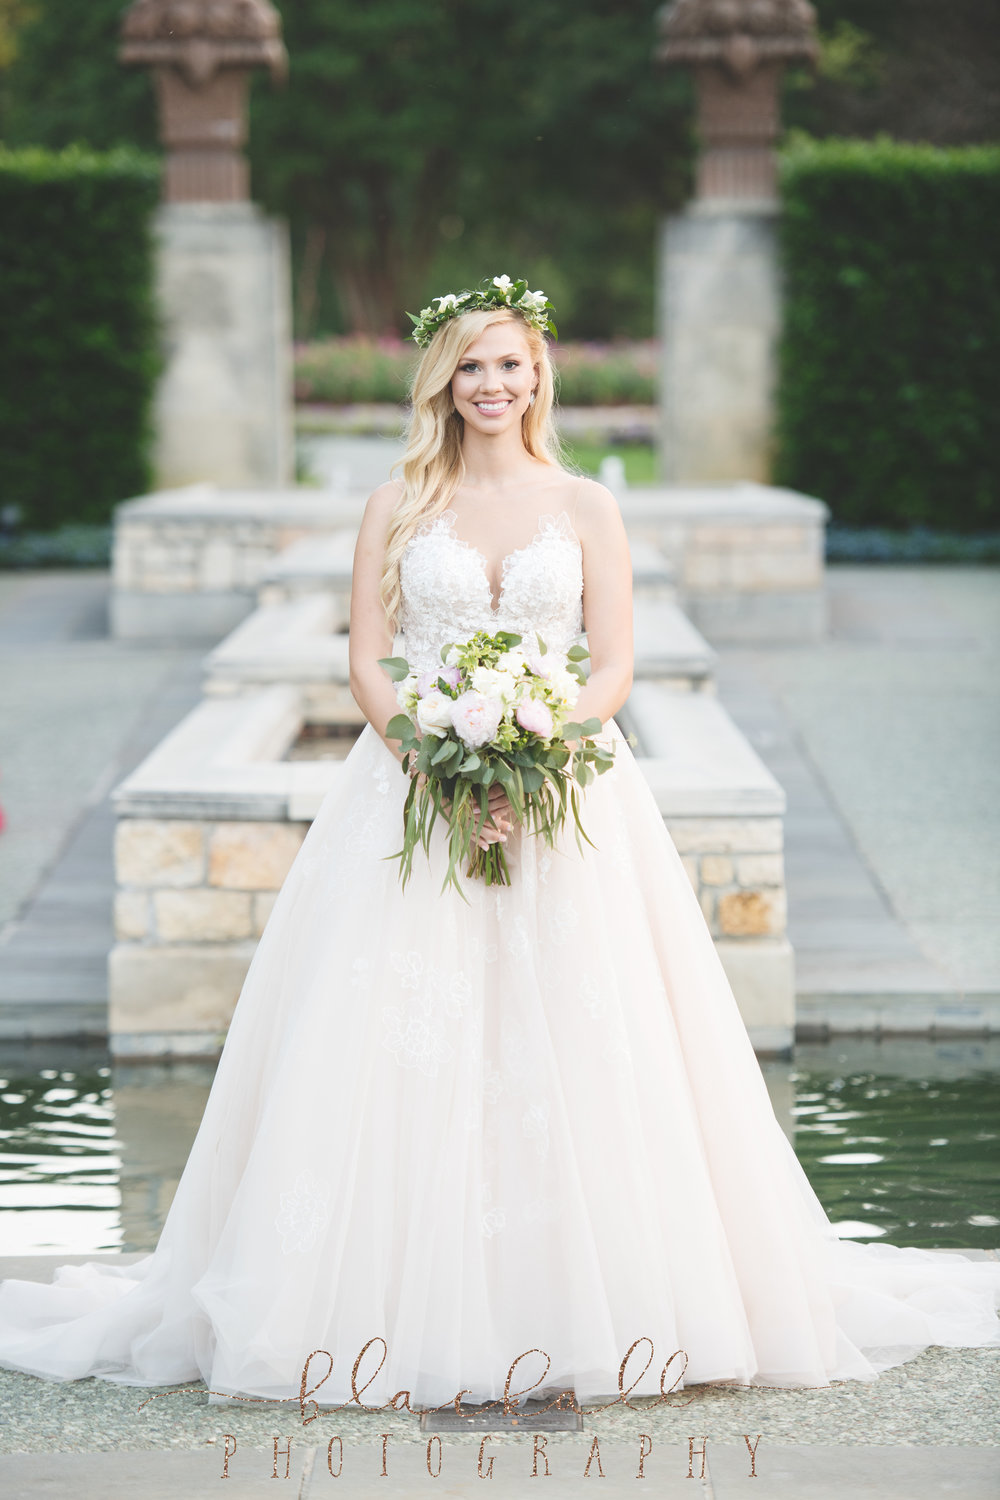 BRIDALS_BlackallPhotography_21.JPG